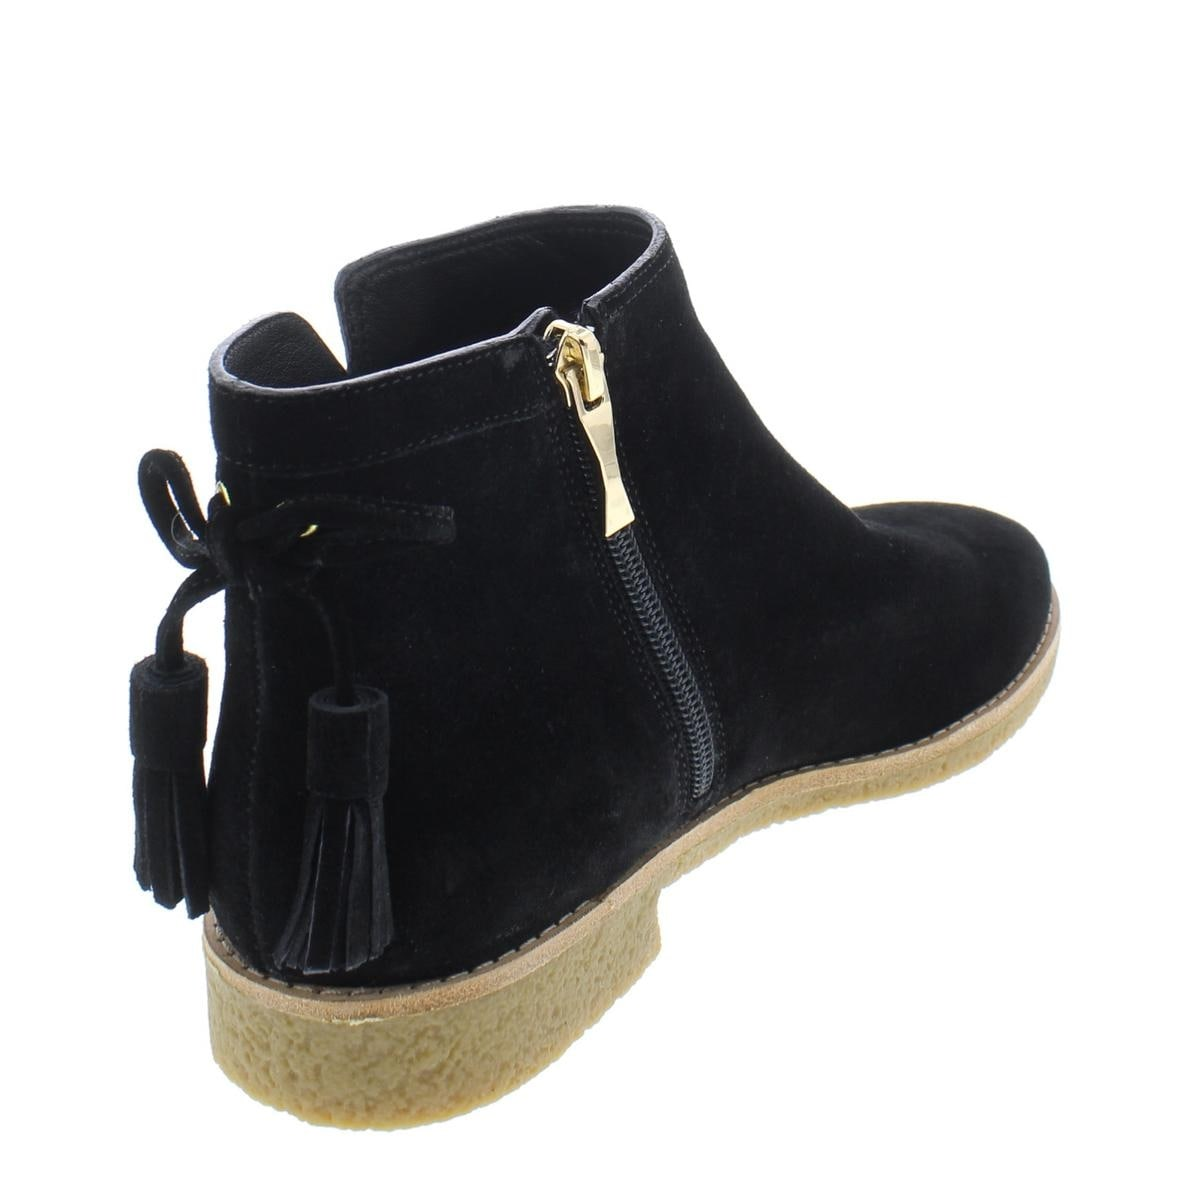 548414ce9082 Shop Kate Spade Womens Bellville Too Booties Suede Tassel - Free Shipping  Today - Overstock - 24077323